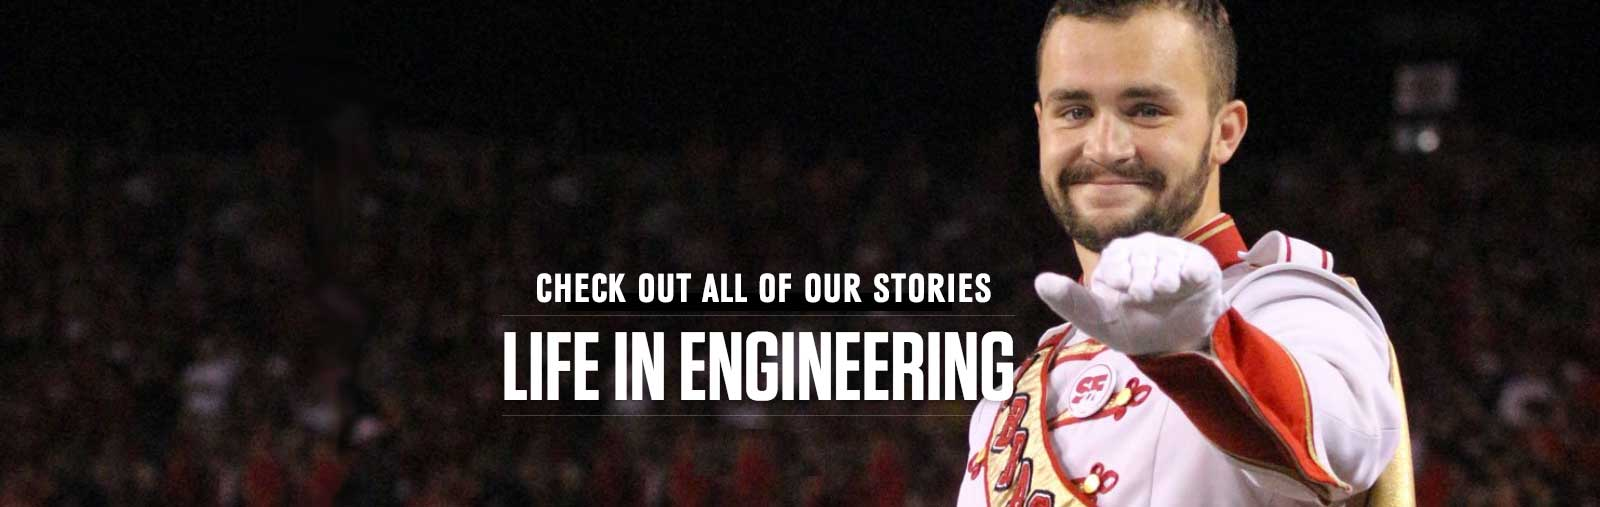 Life In Engineering: Check out all of our stories